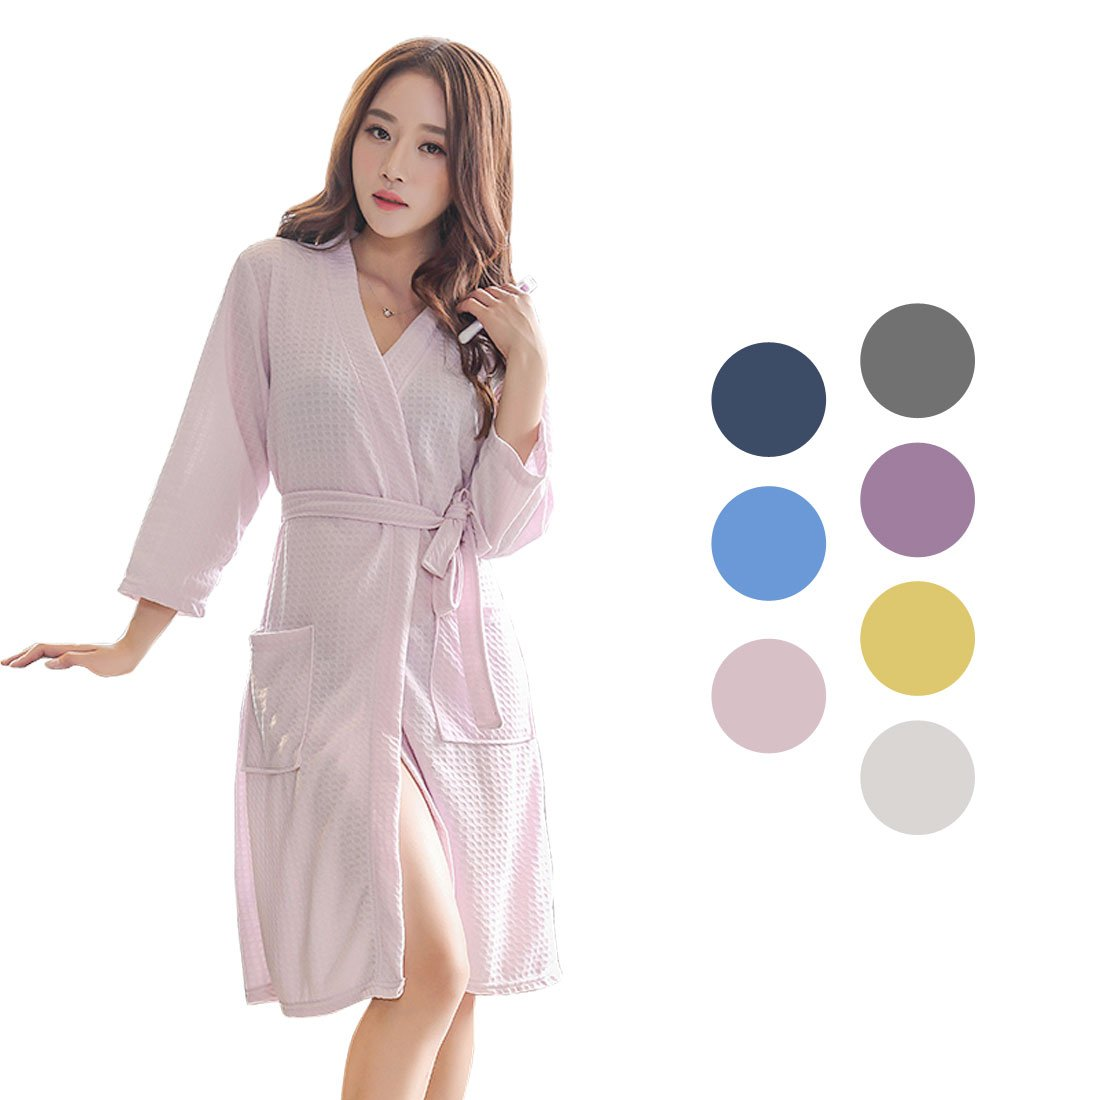 c390d8a42e Get Quotations · uxcell Women s Turkish Cotton Robe Waffle Kimono Robe Knit  Unisex Bathrobe Lightweight Loungewear Sleepwear